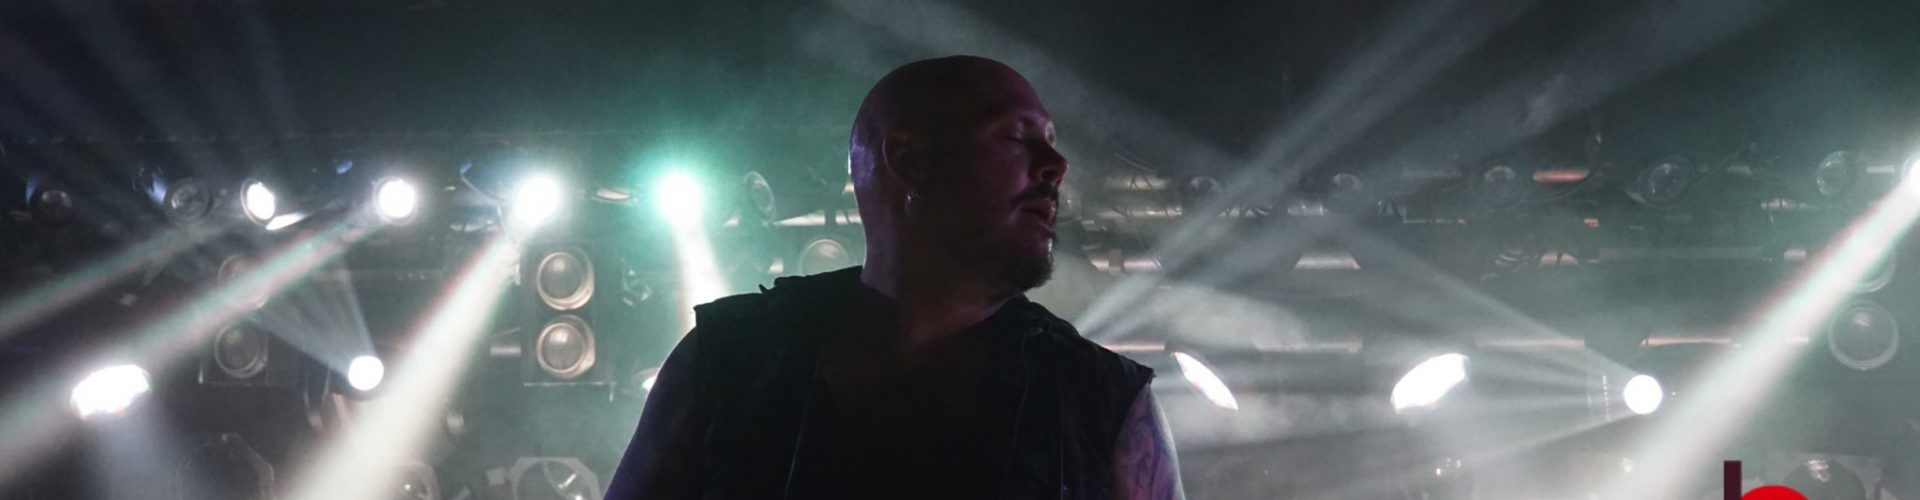 FOTOSTRECKE: SOILWORK, KAMBRIUM und DUST IN MIND – Metal vom Feinsten